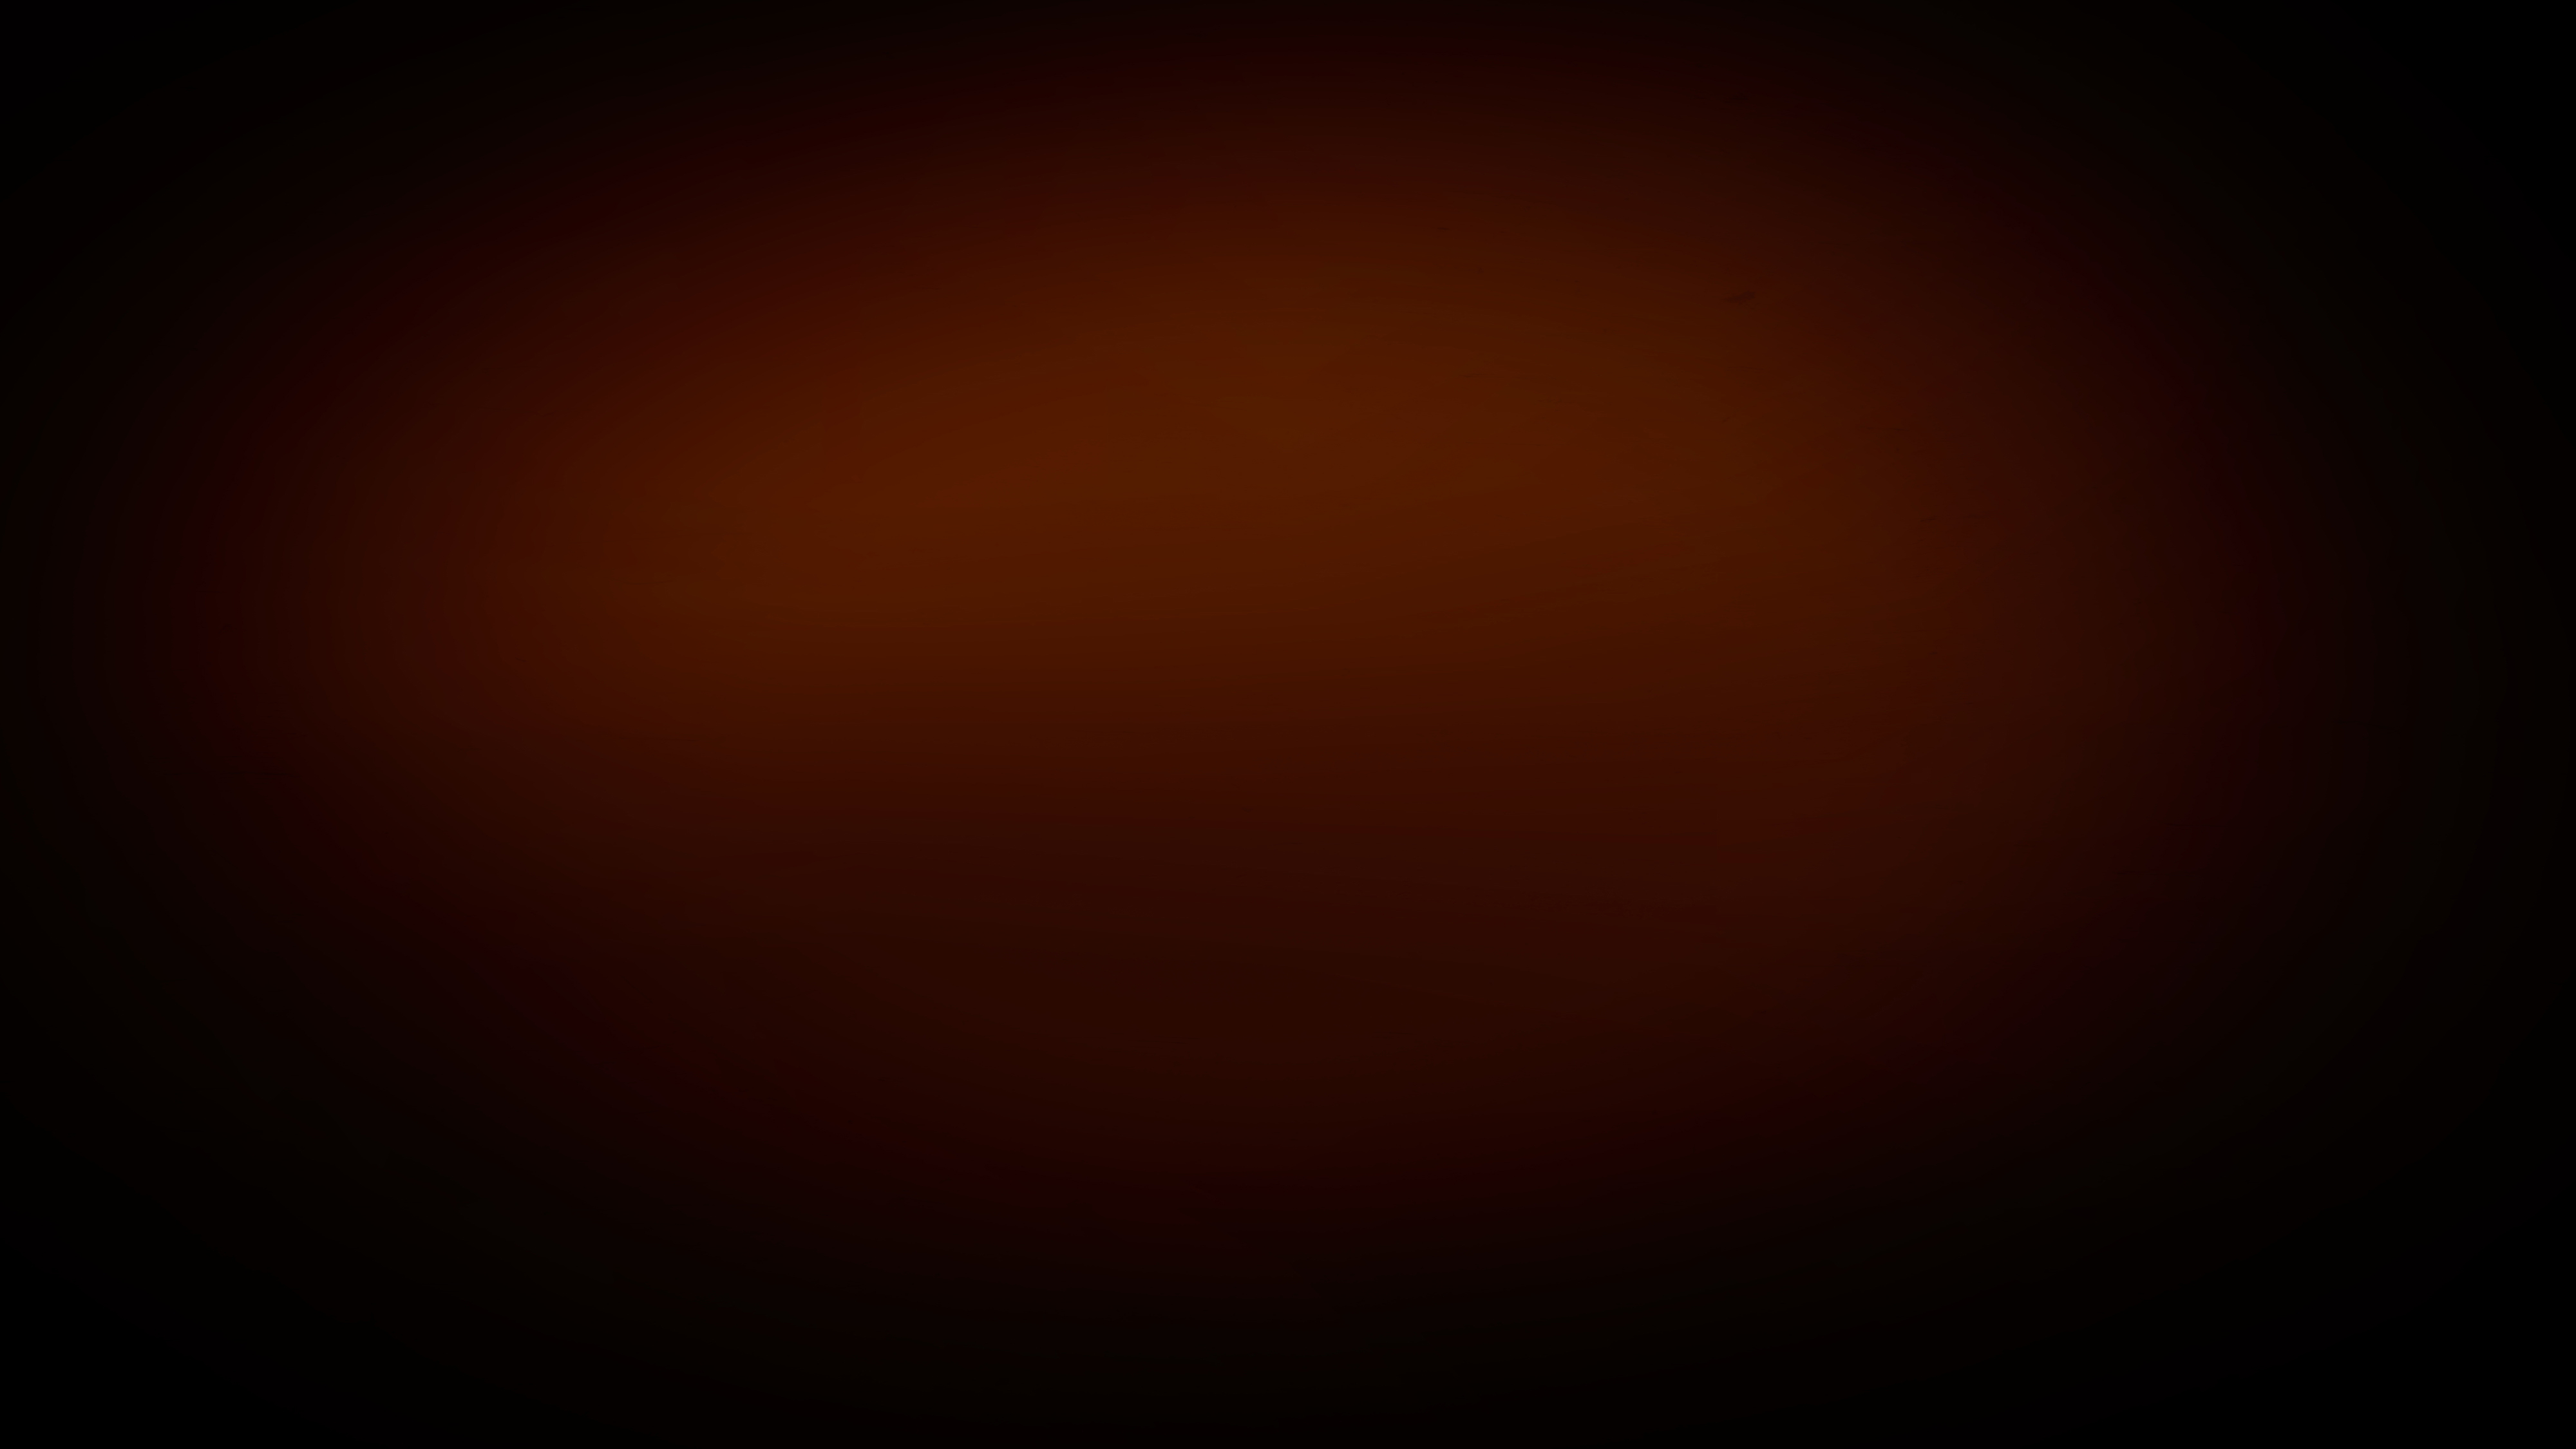 Black Brown Red Background Image 4000x2250